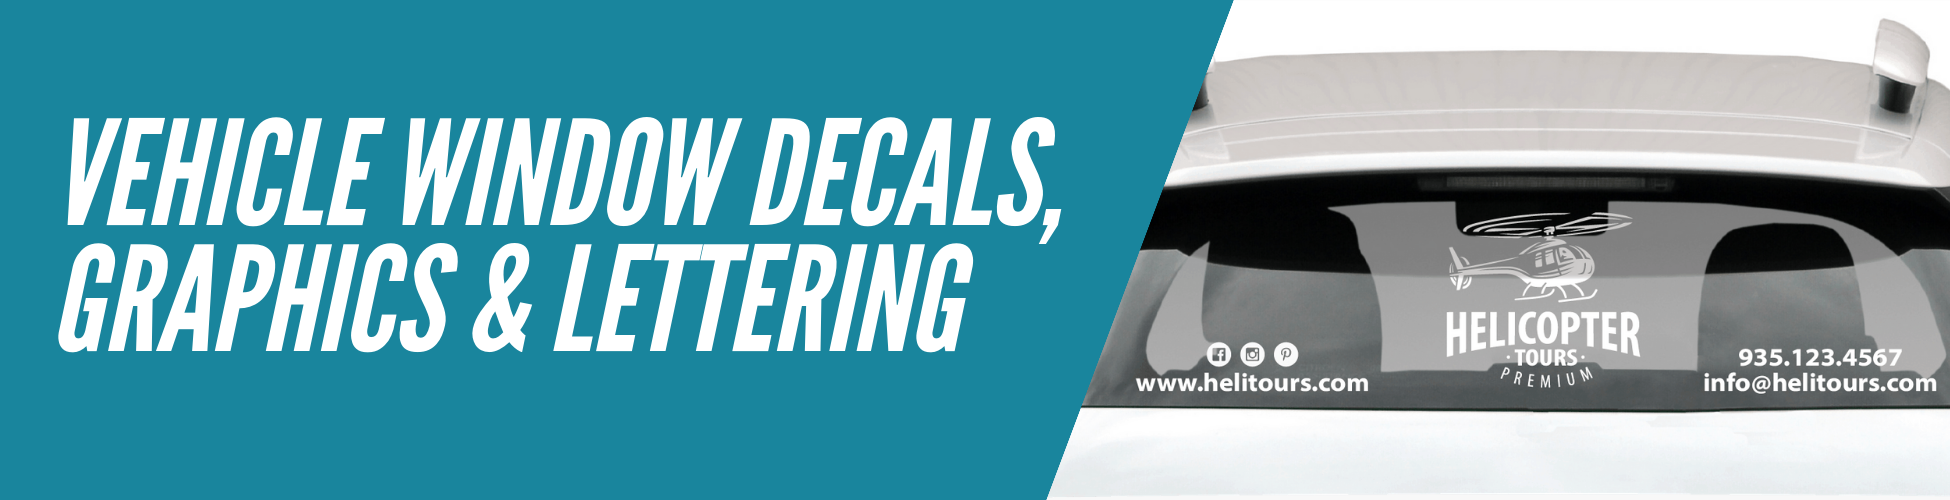 vehicle-window-decals-graphics-lettering-banner-v2.png